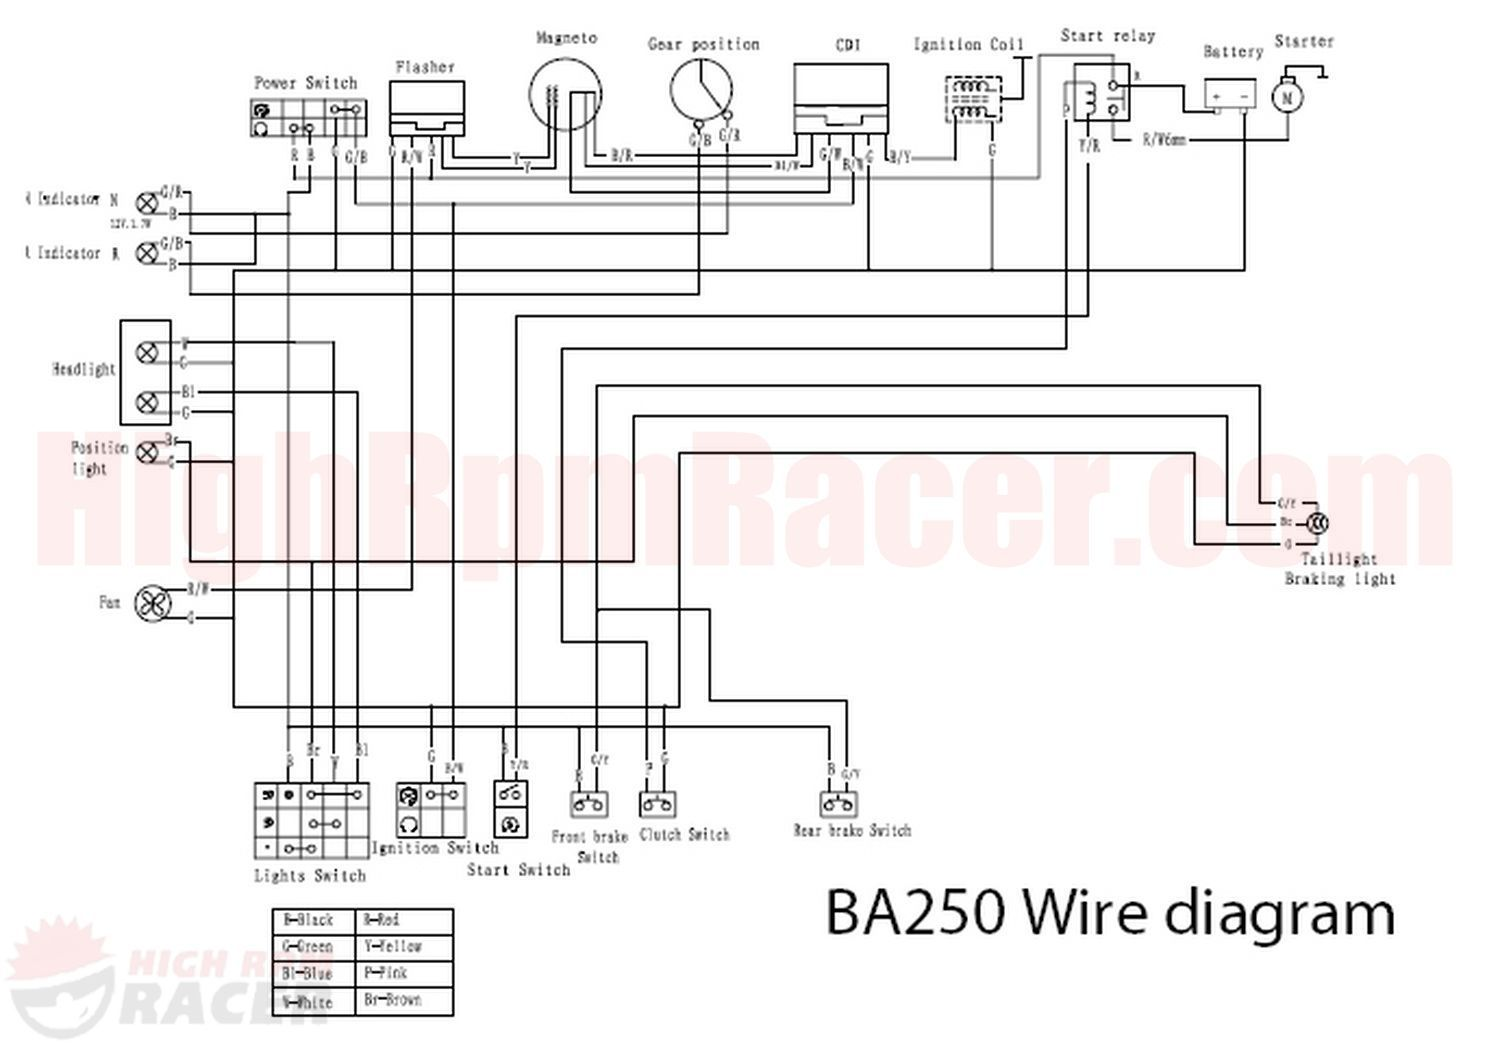 Wiring Diagram for Baja 250cc ATVs | Diagram, Wire, 250cc